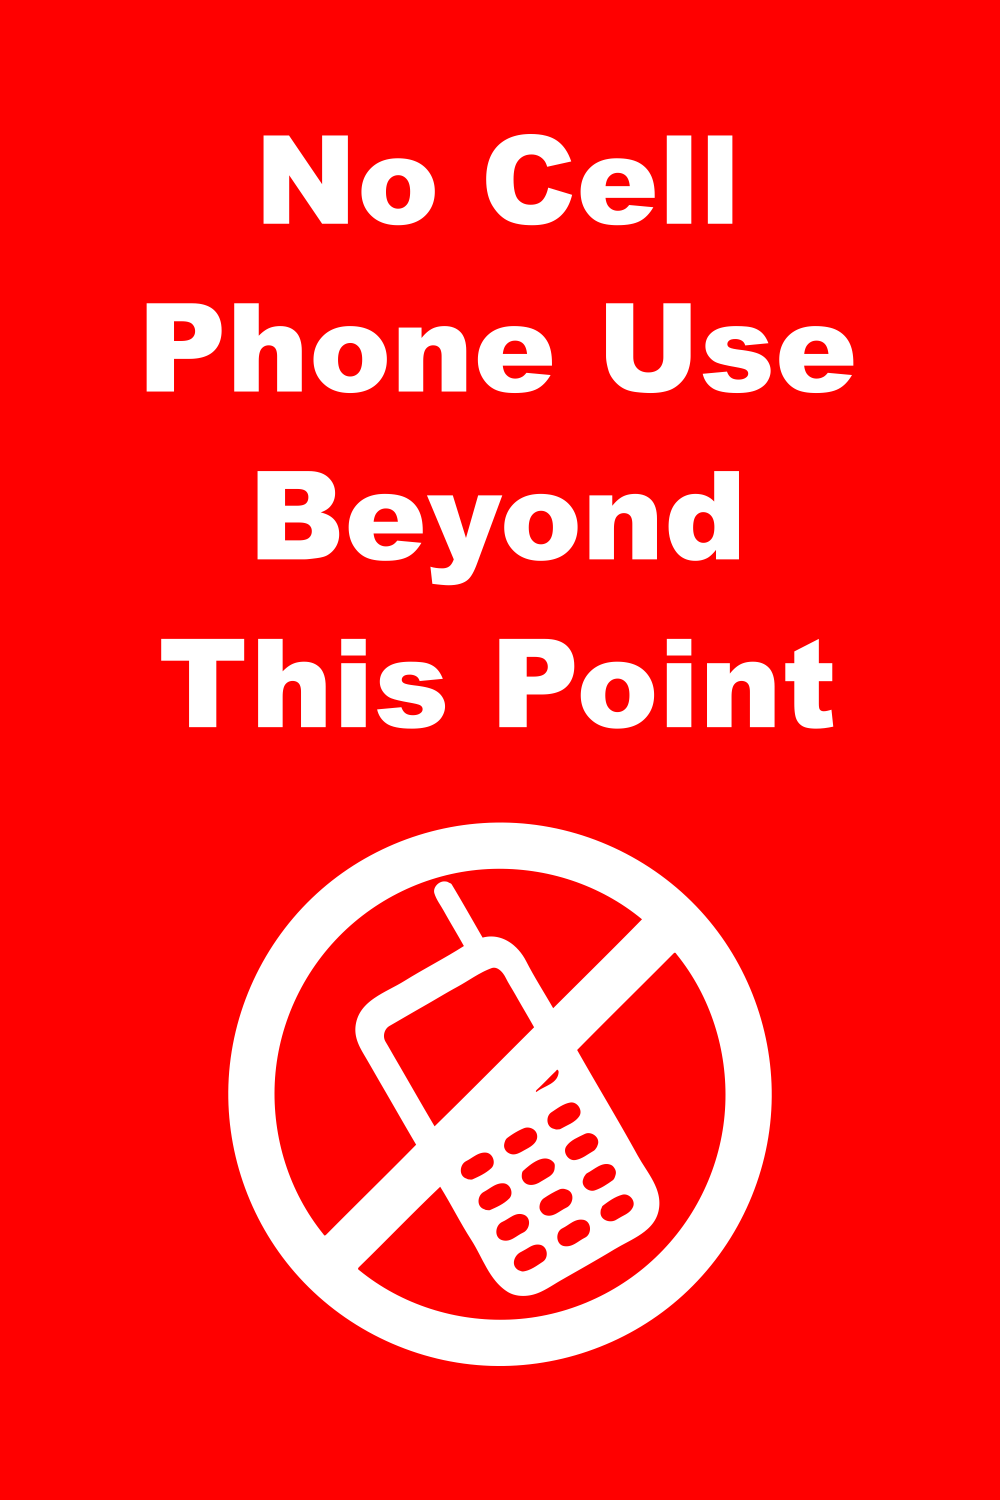 No Cell Phone Use Beyond This Point